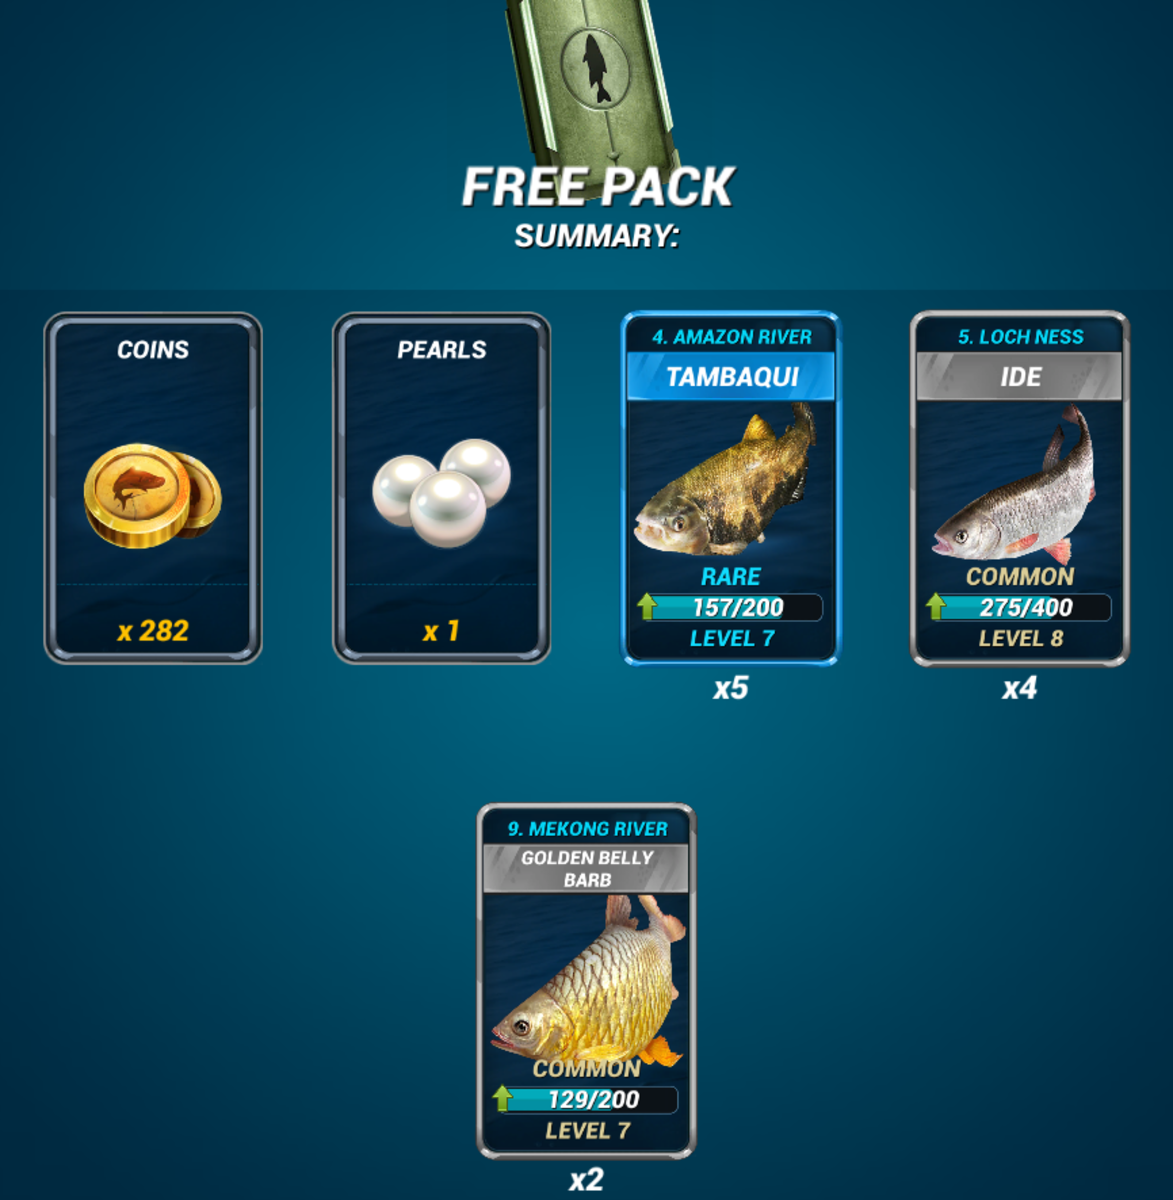 Example Rewards From a Free Pack